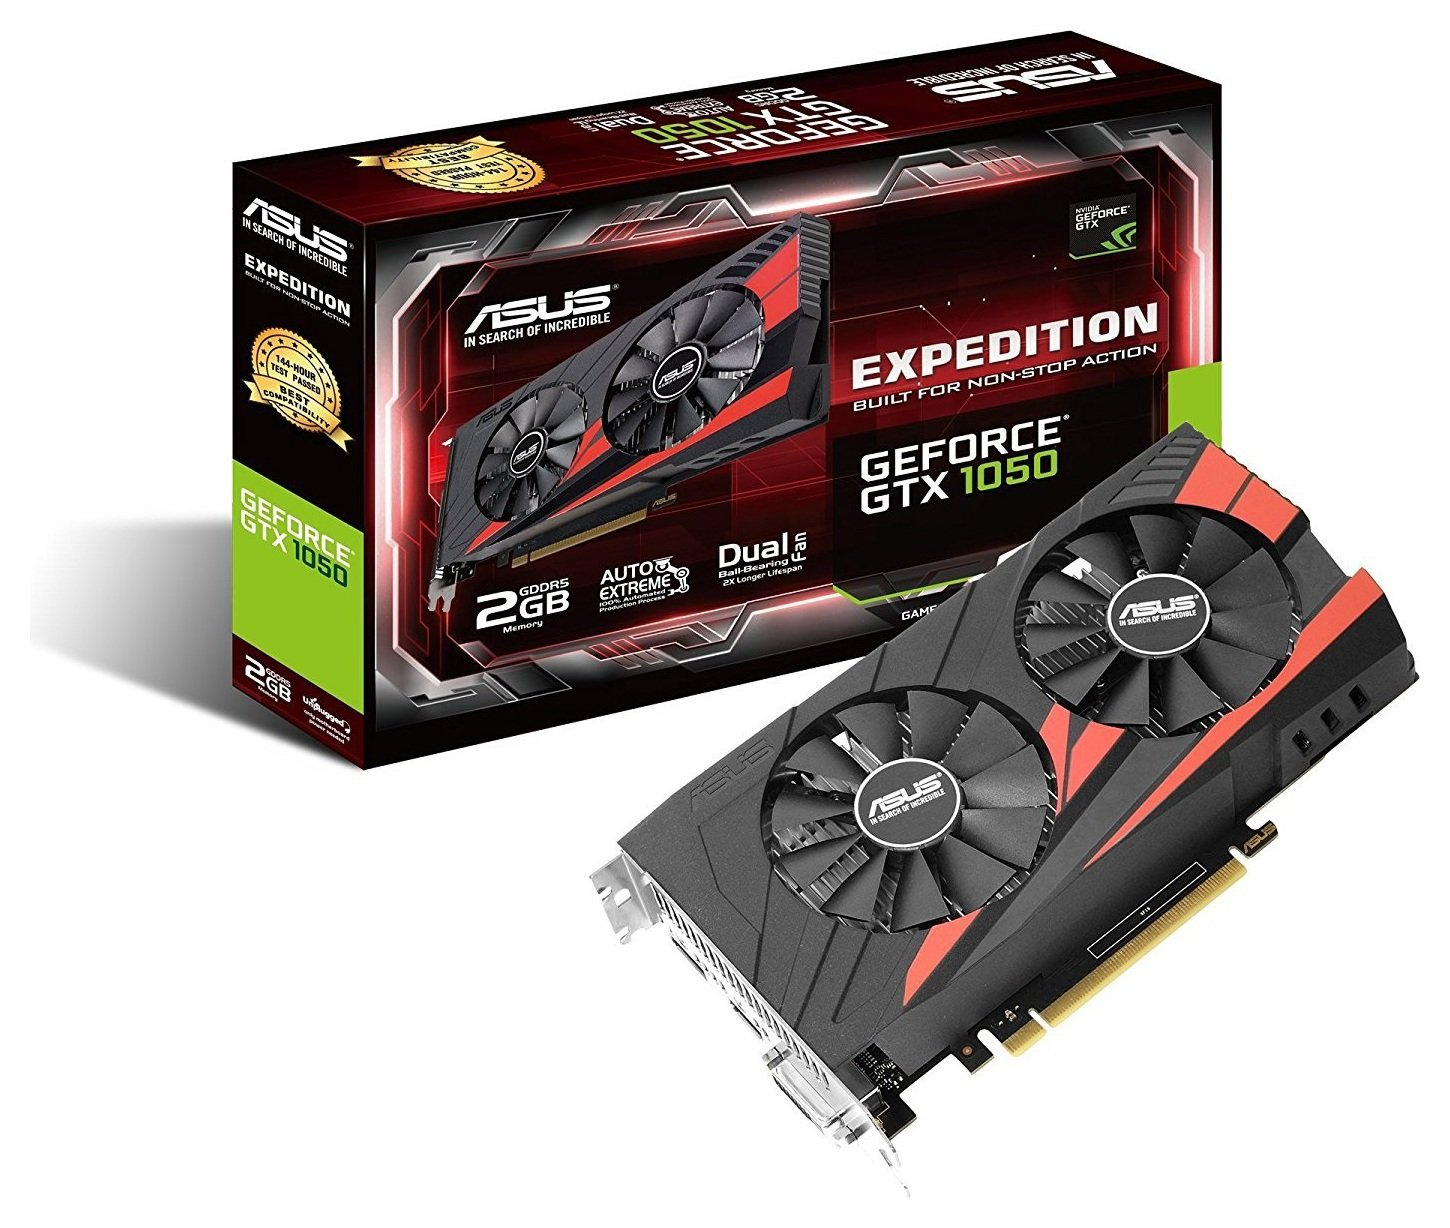 Asus Expedition GeForce NVIDIA GTX 1050 2GB Graphics Card.